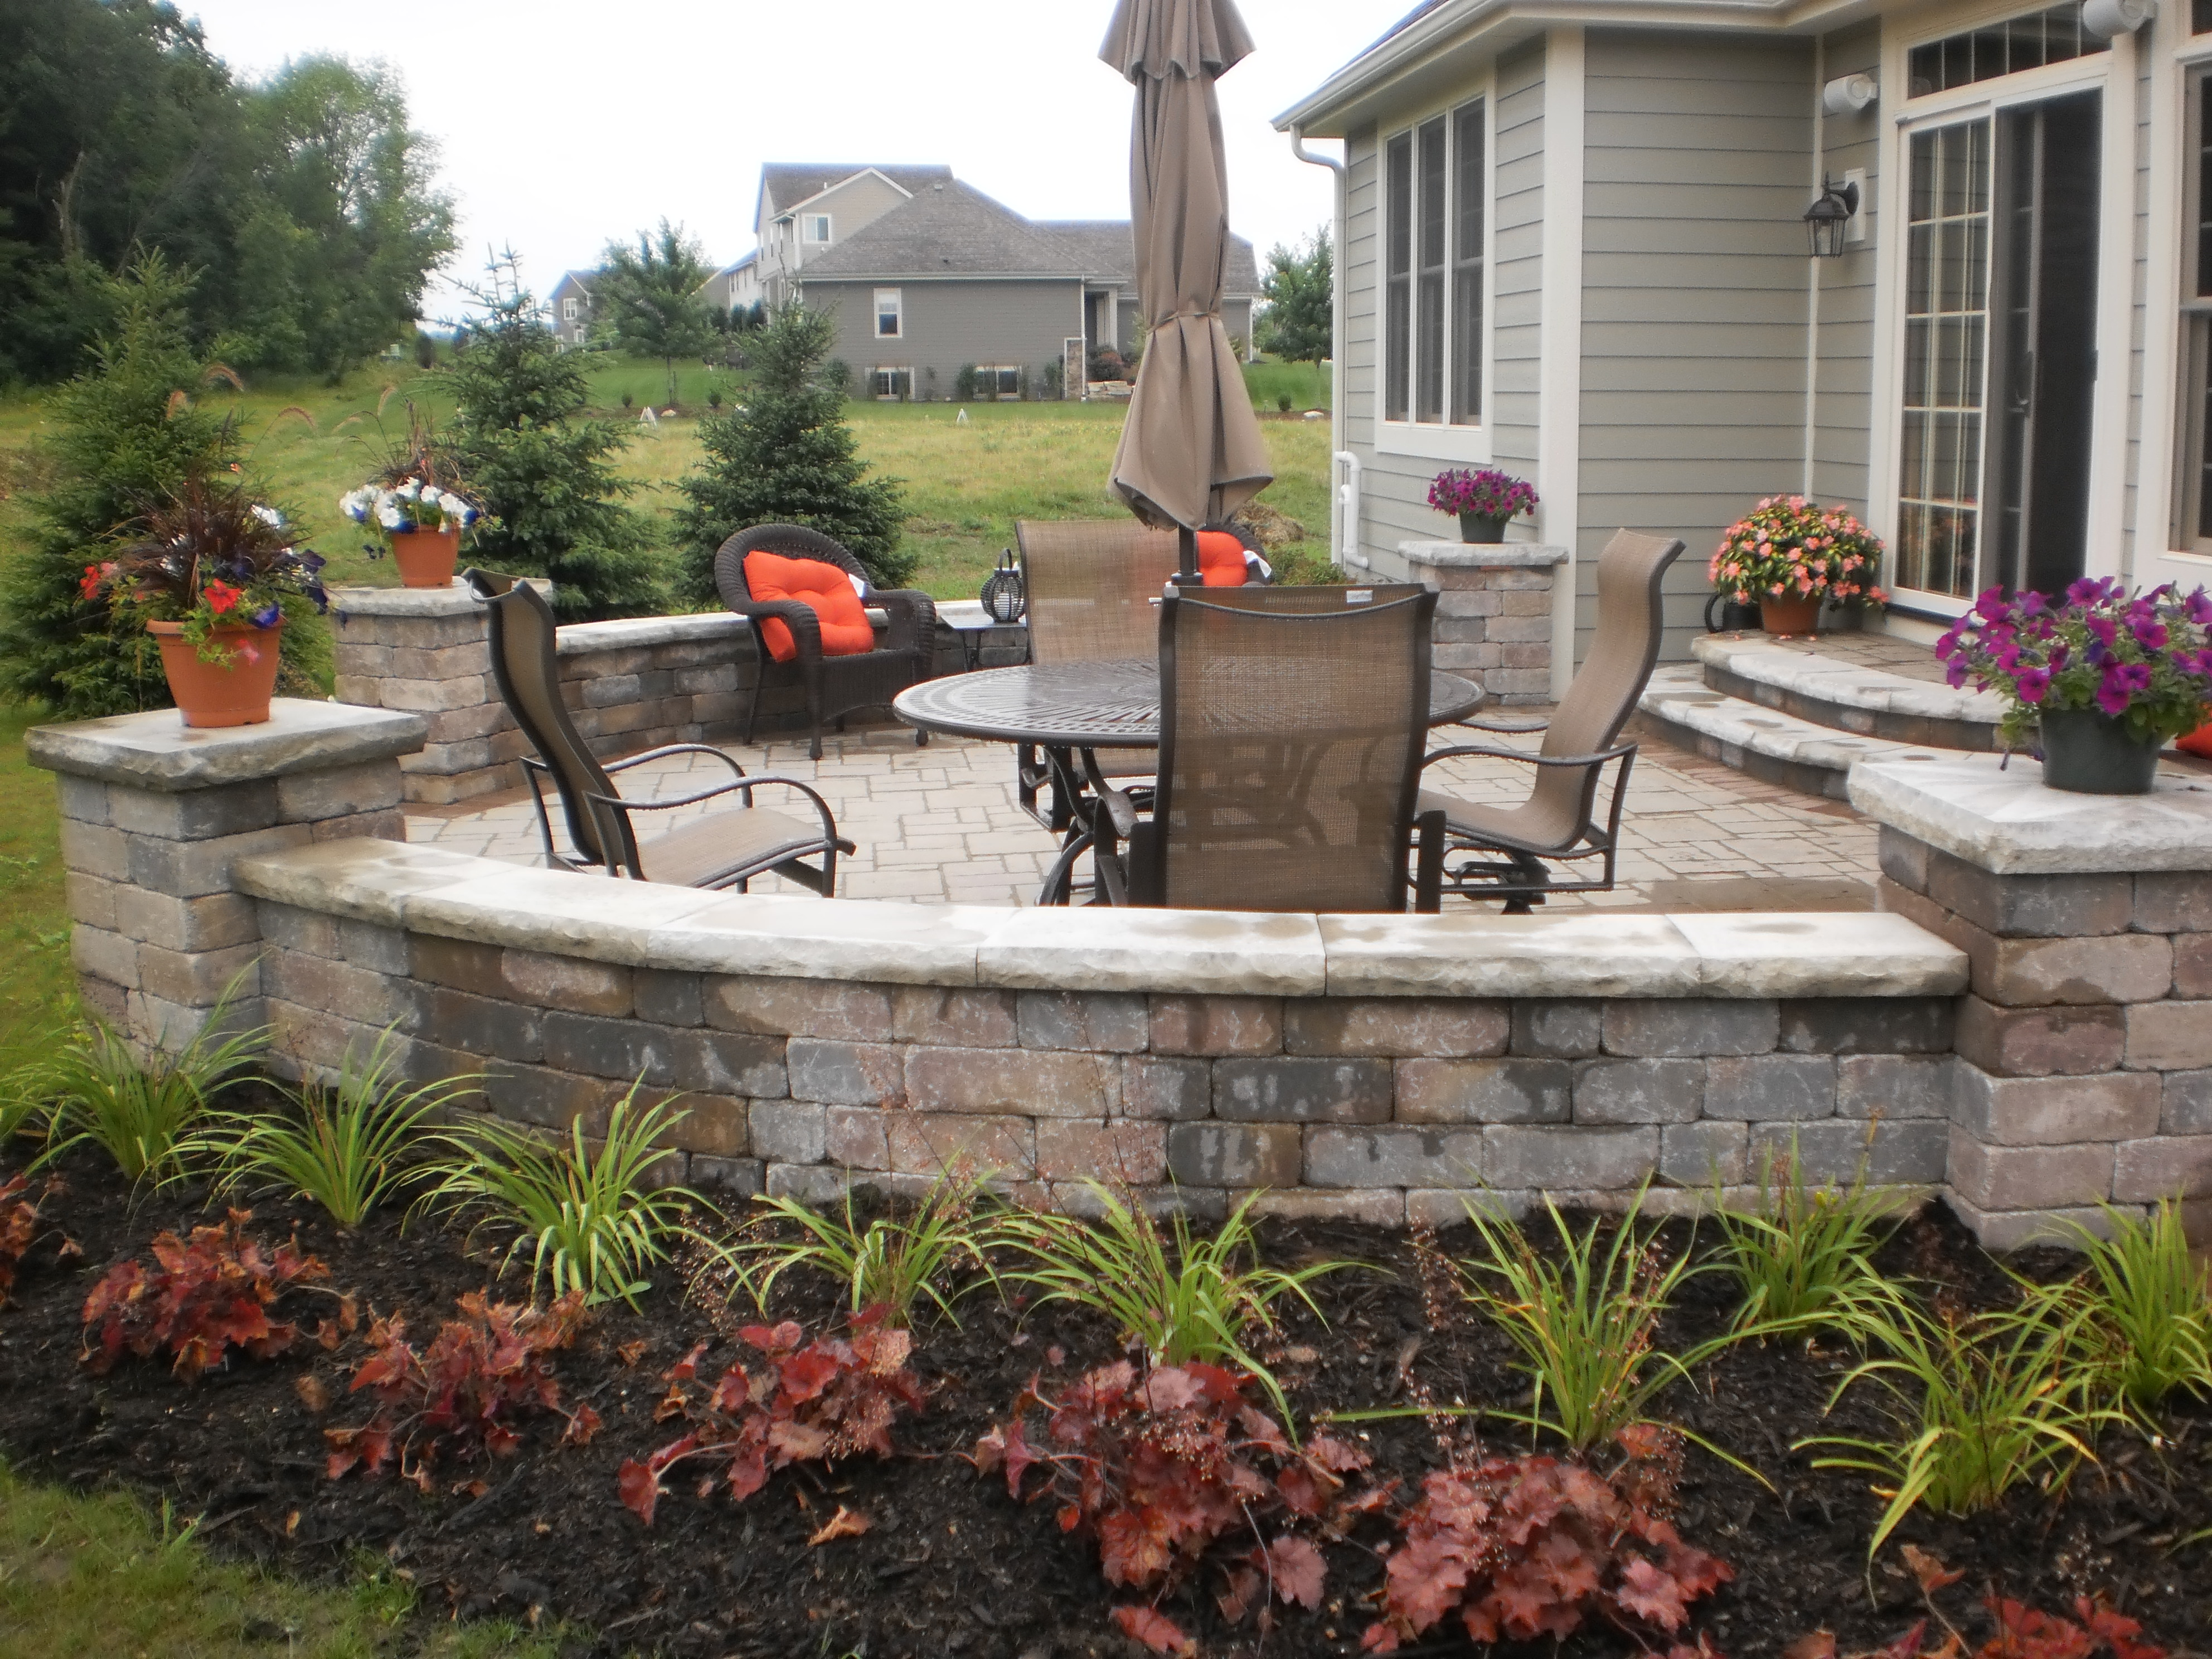 ... Flagstone Patio, Or Natural Stone/interlock Retaining Wall, Trees On  The Move Can Design And Install Hardscapes To Coordinate With Your Total  Landscape ...